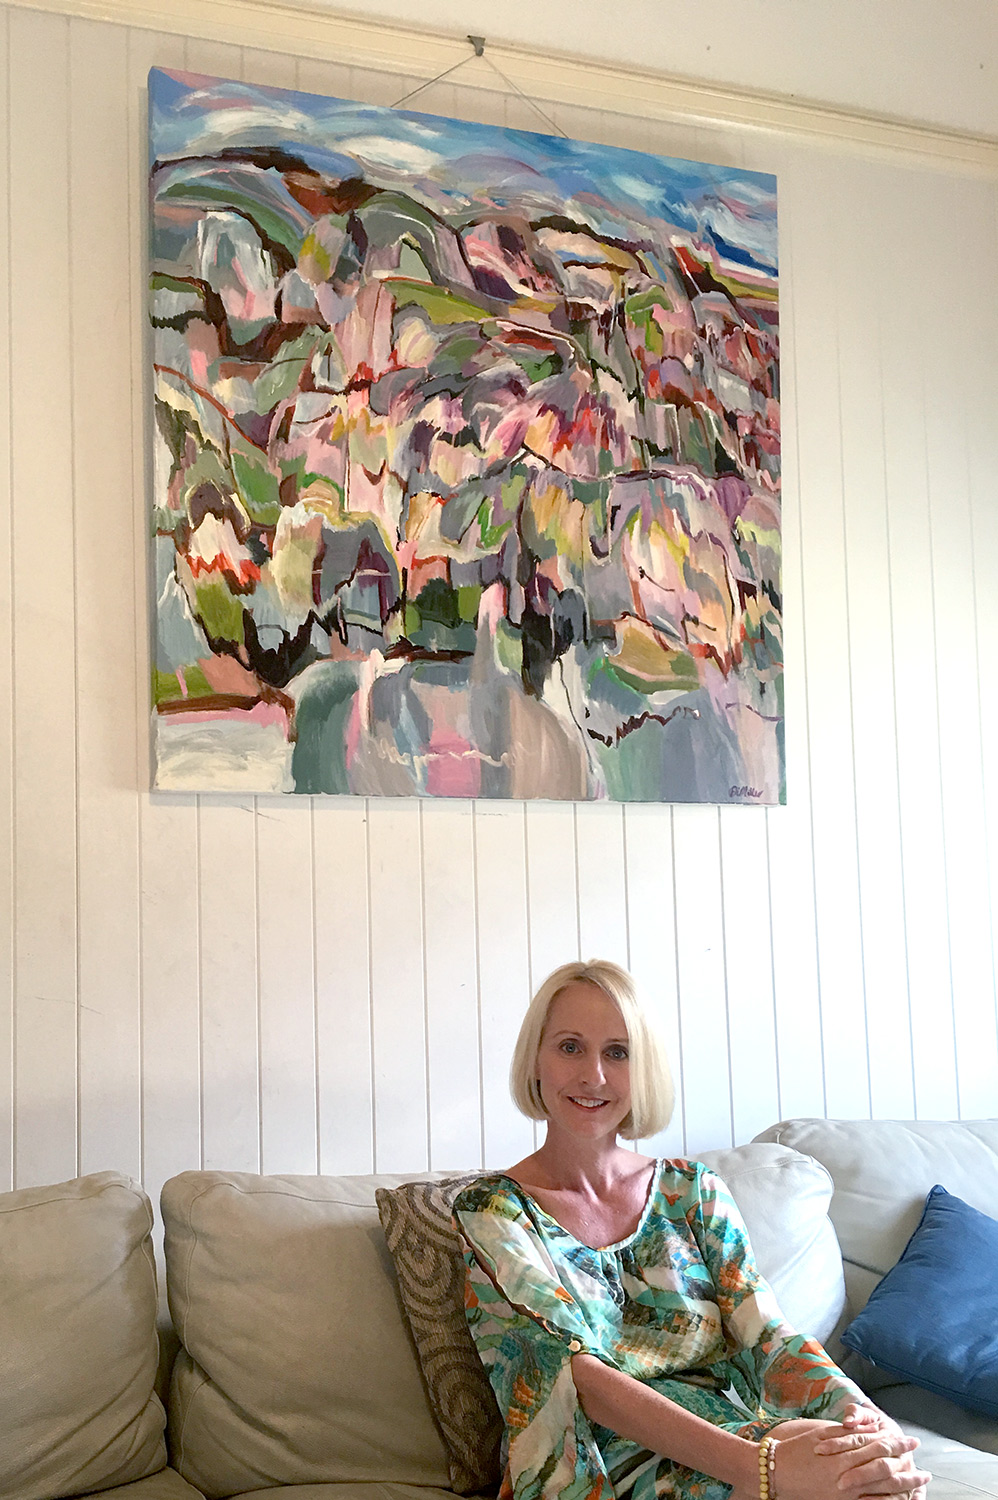 Alison in her West End home in Brisbane with her commissioned abstract landscape painting